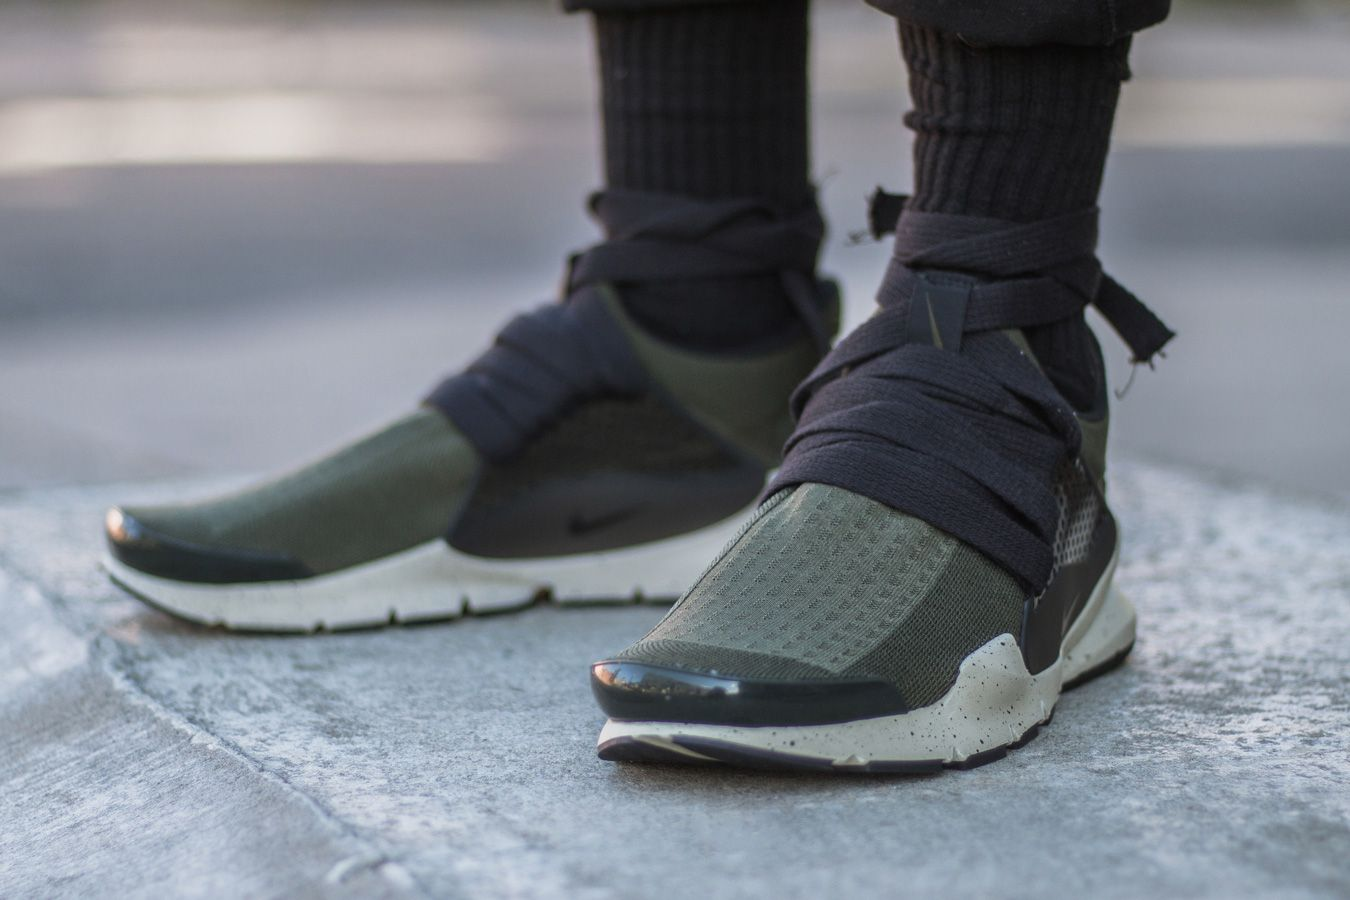 brand new f54d2 f492a Designer Eske Schiralli Customizes His Sock Darts With Laces ...